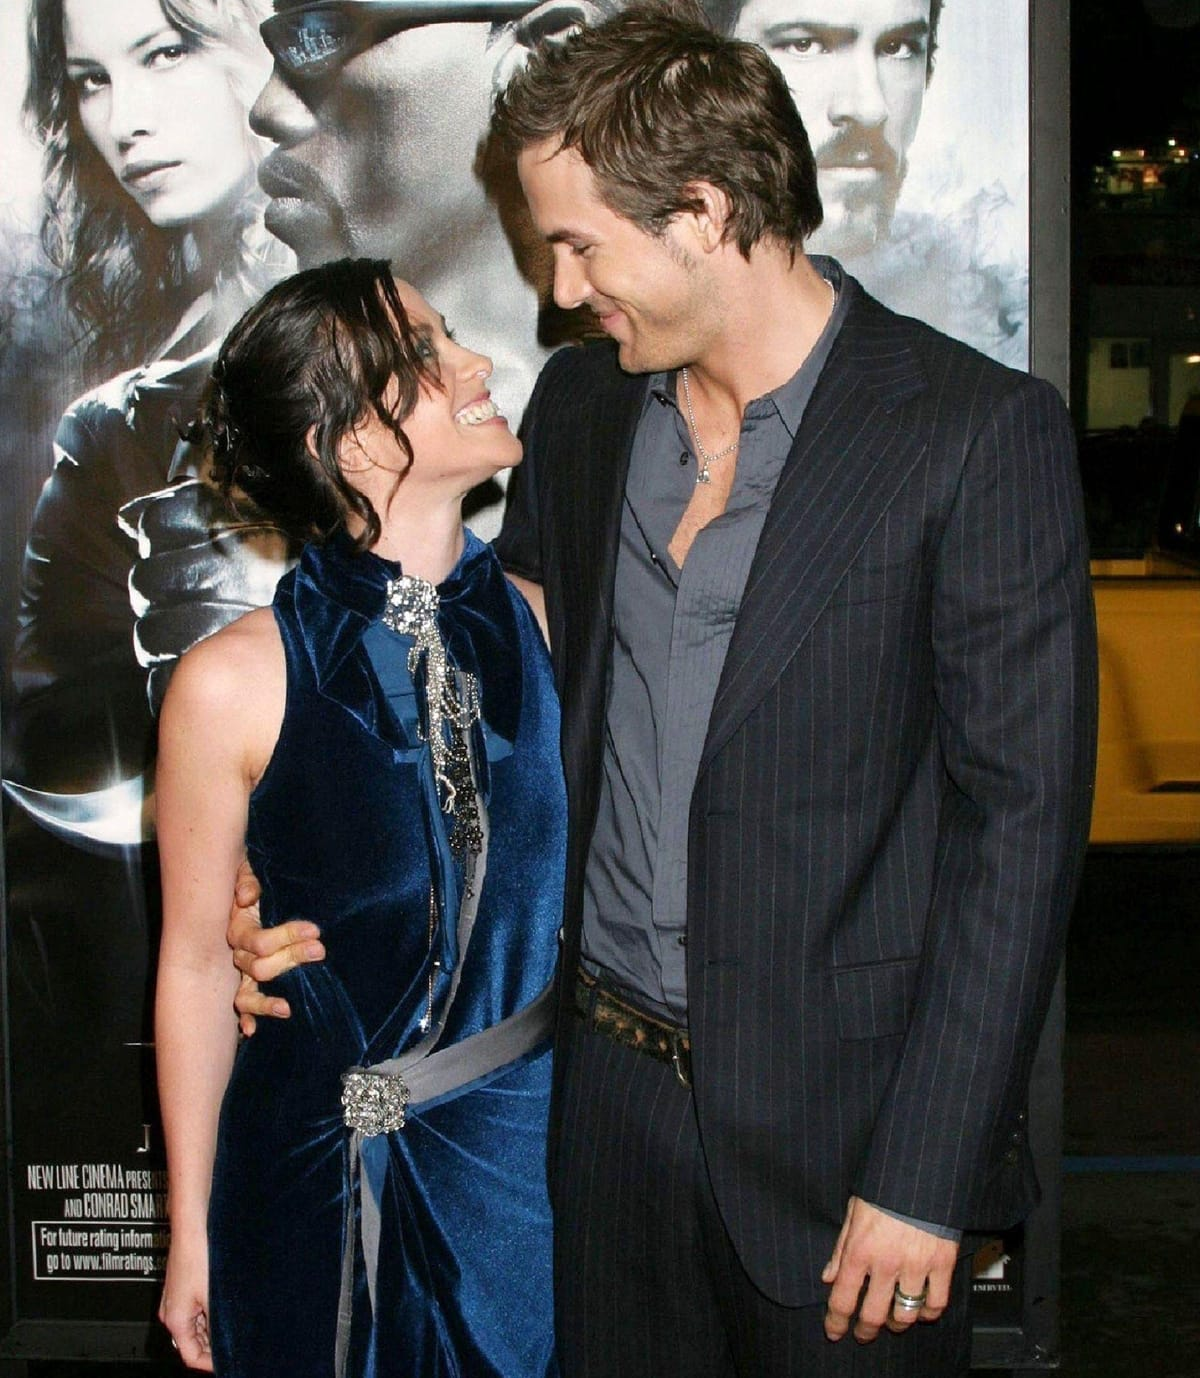 Ryan Reynolds and Alanis Morissette began dating in 2002 and broke up in 2008